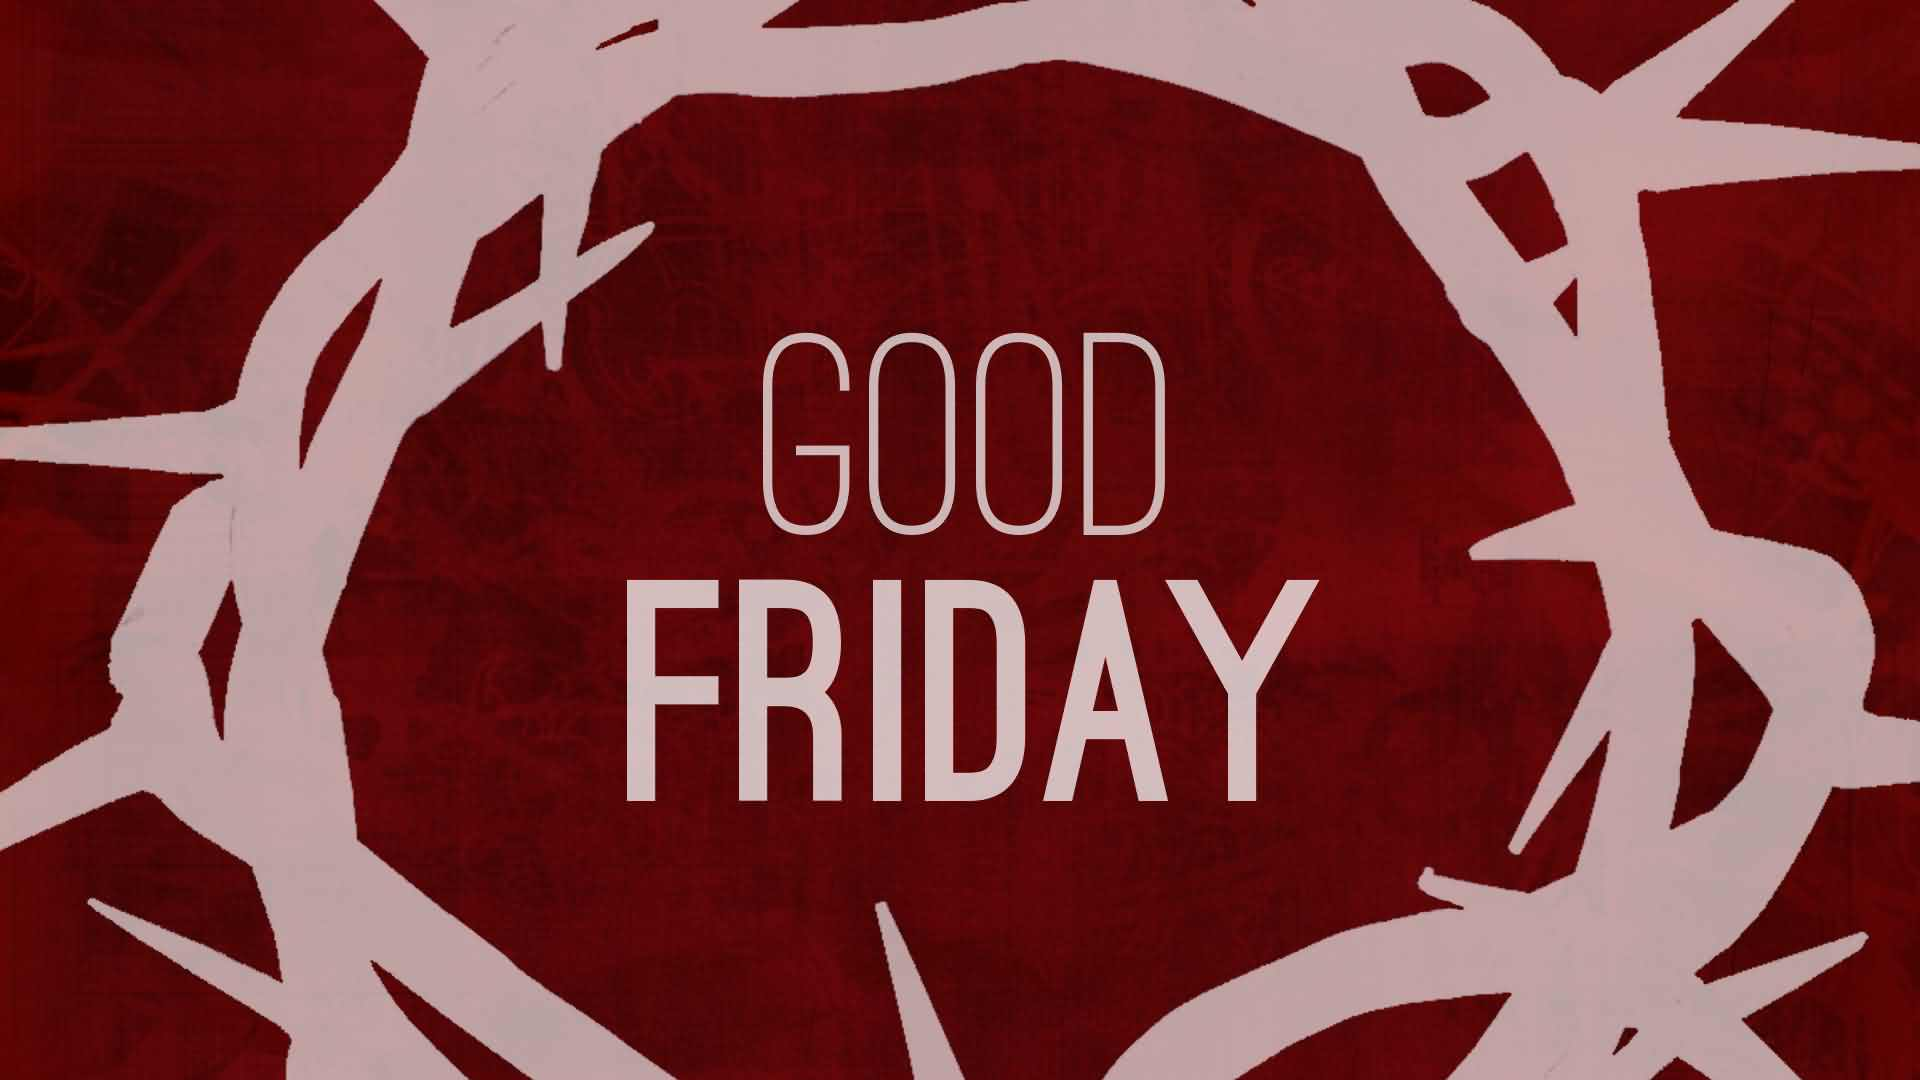 93-Good Friday Wishes